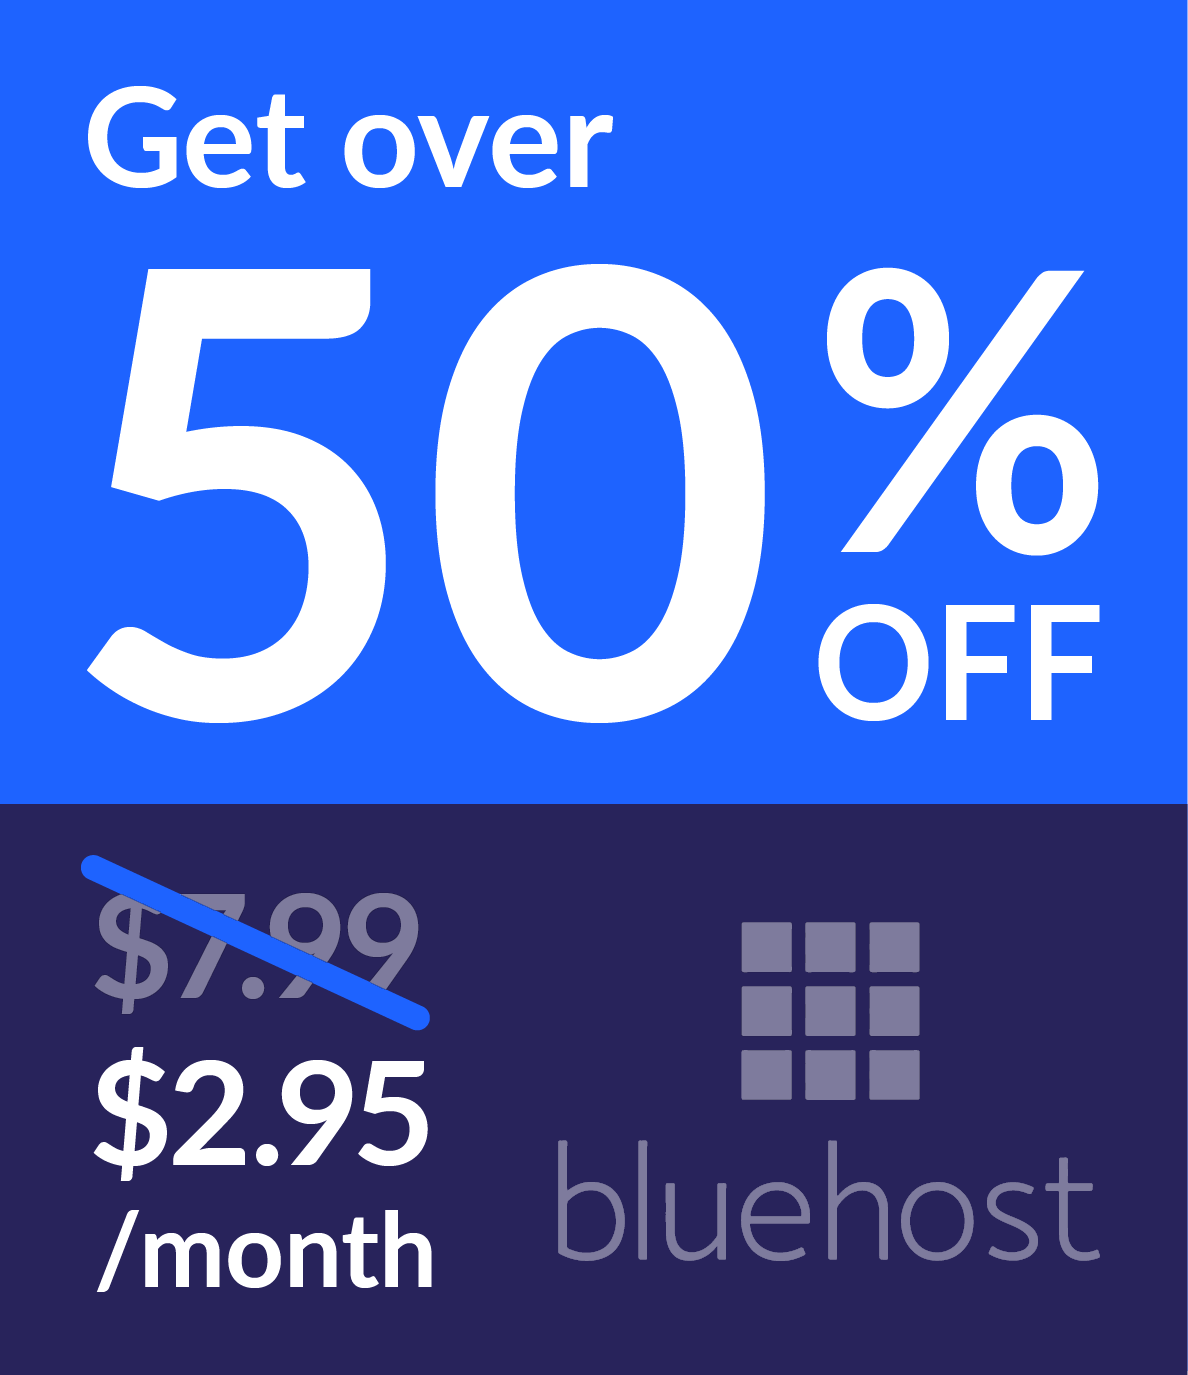 bluehost discount information